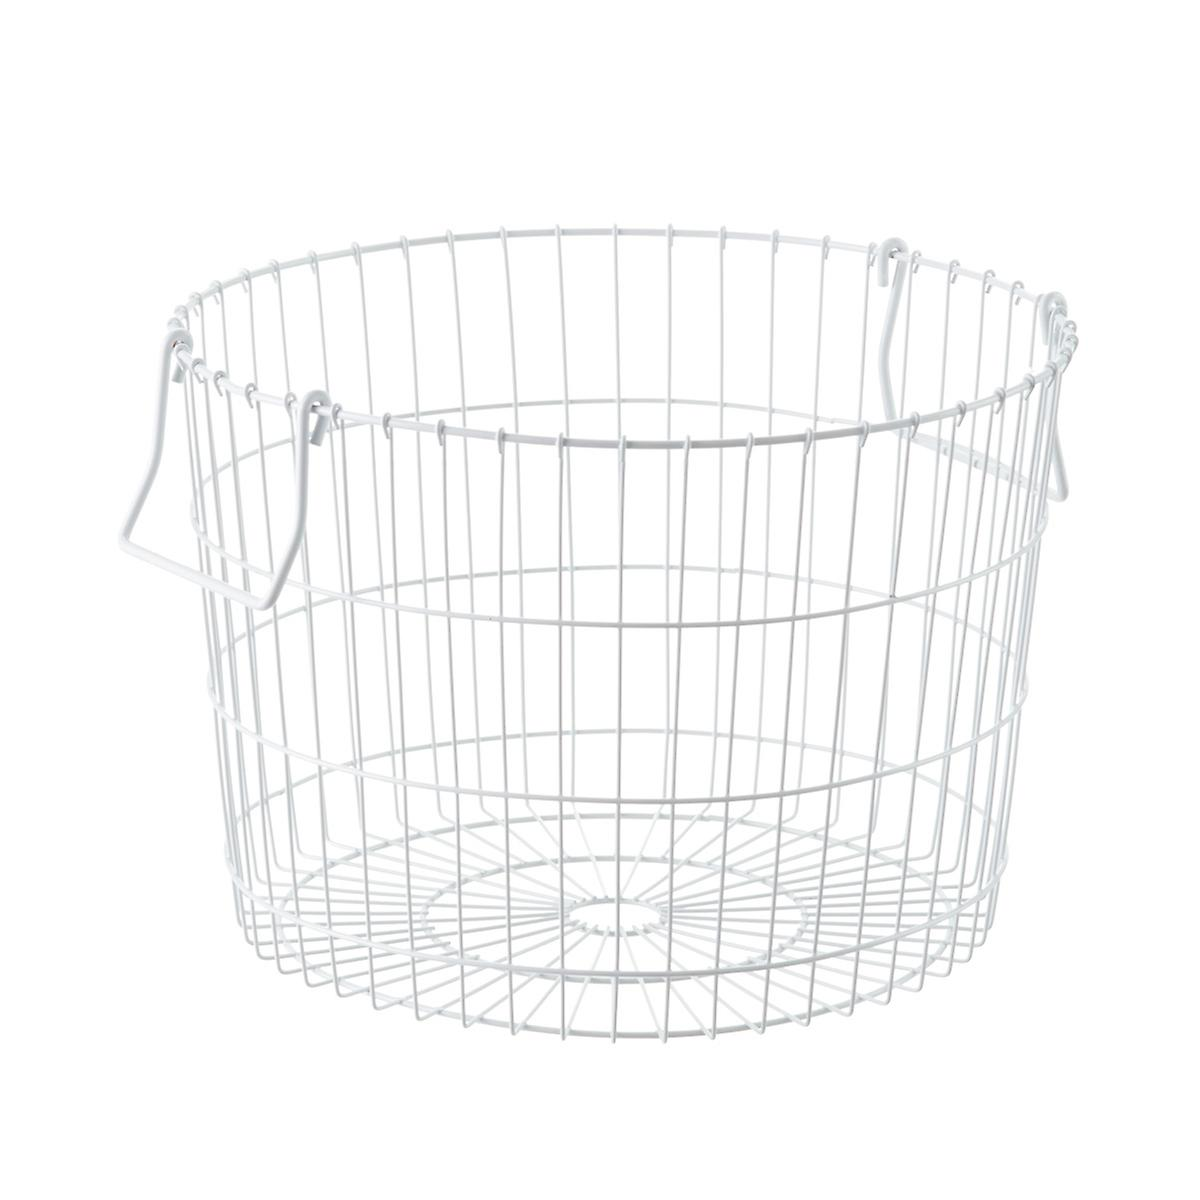 MDesign Farmhouse Decor Metal Wire Food Organizer Storage Bin Baskets with Handles Shop Best Sellers· Deals of the Day· Fast Shipping· Read Ratings & Reviews2,,+ followers on Twitter.